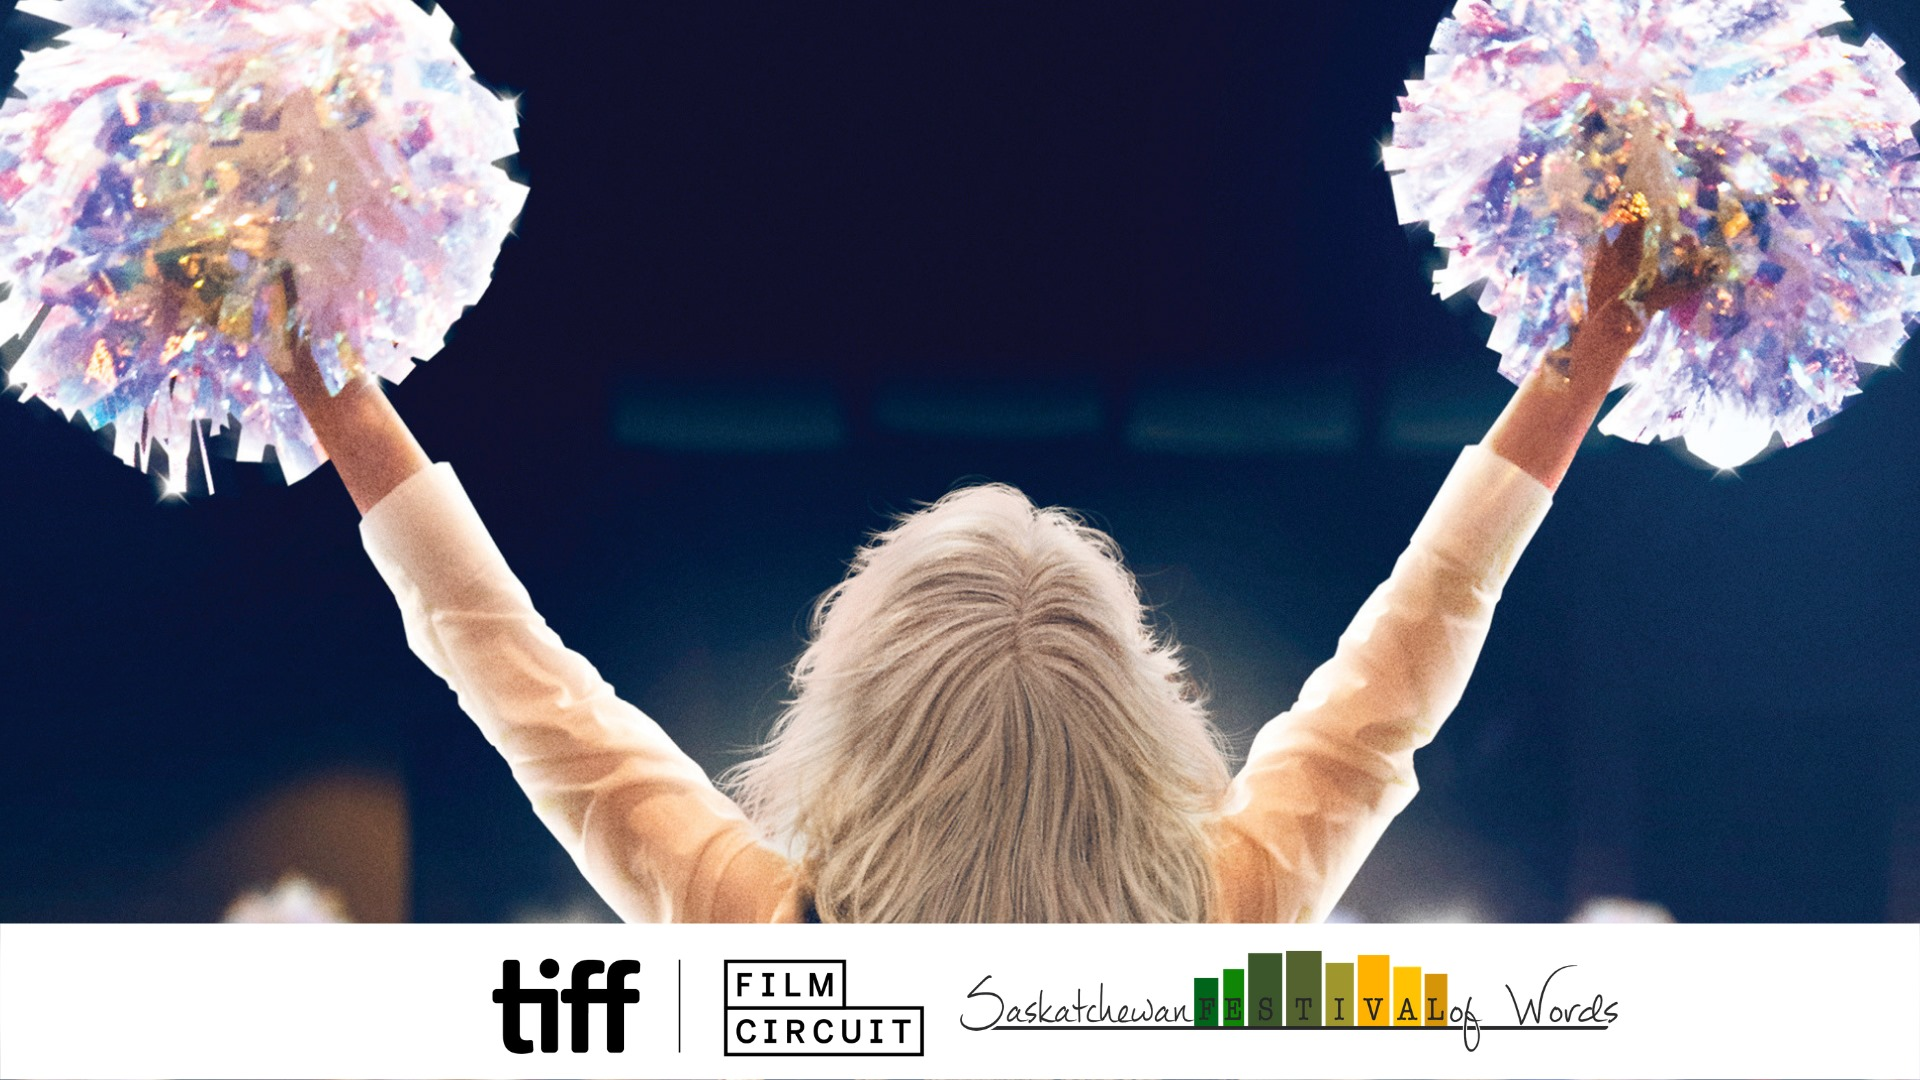 Cineview a partner with the Toronto International Film Festival through their Film Circuit program. This season we are bringing in 4 films to the Moose Jaw Galaxy Theatre. Tickets are $10 at the door and passes are $25. Cash only.